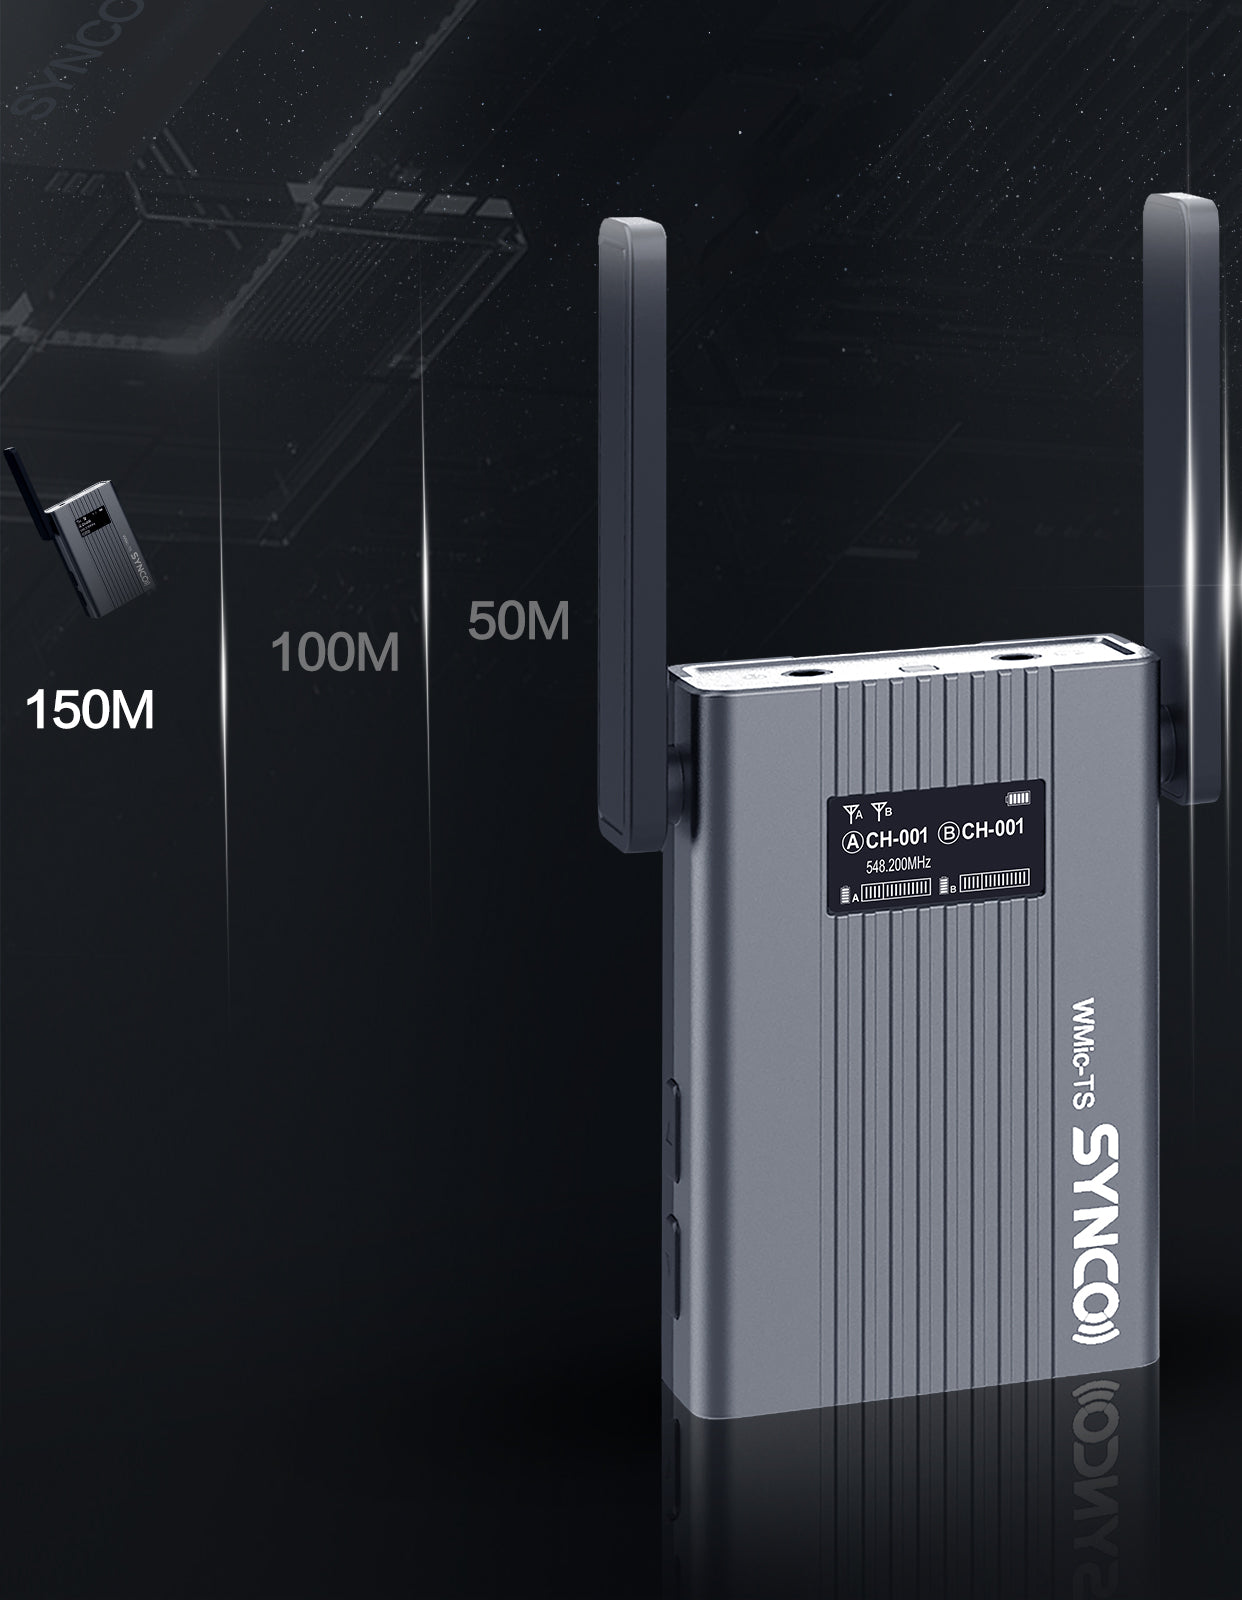 SYNCO WMic-TS SYNCO Wireless LinkLable UHF Band